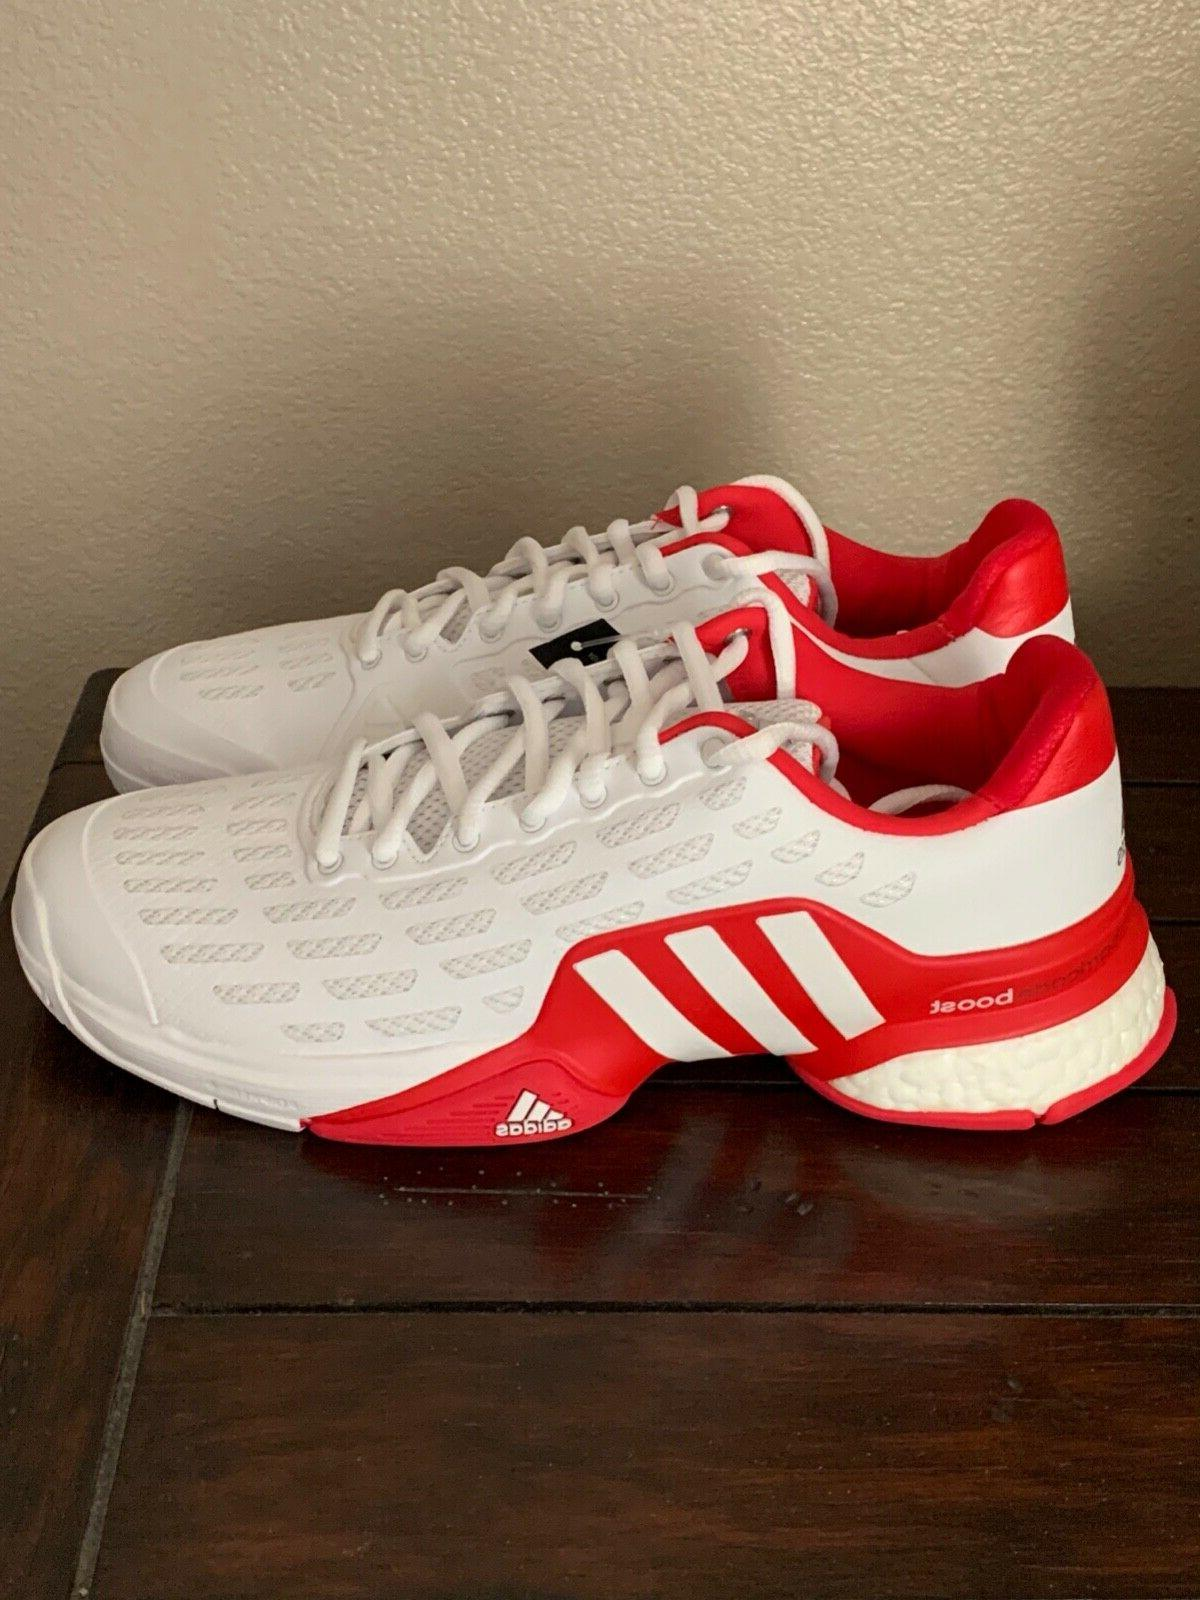 Adidas Men's Barricade Boost Tennis Shoe Style AQ2262 Size